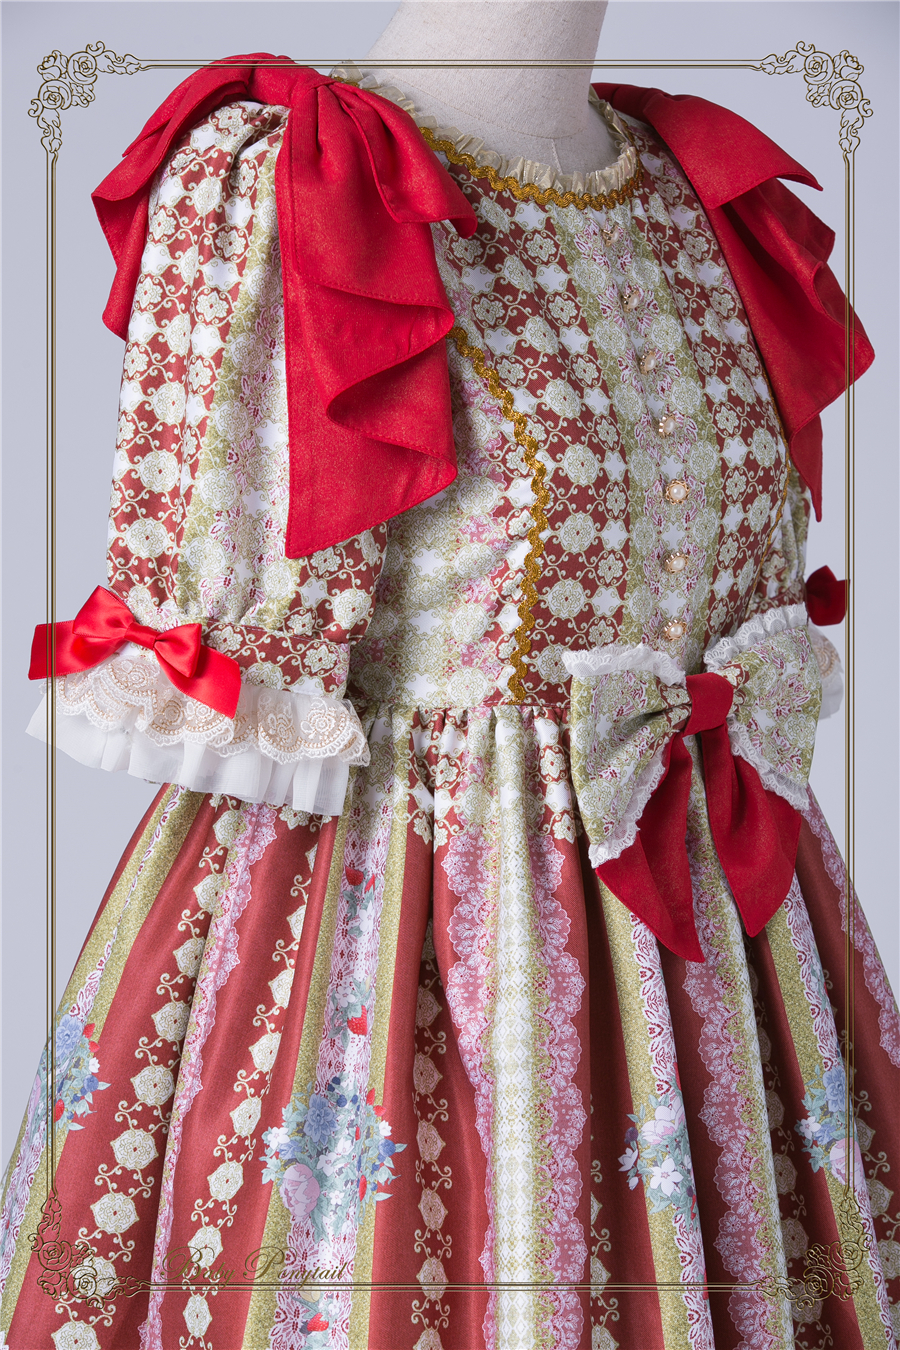 Baby Ponytail_Stock Photo_Rococo Bouquet_OP Red_3.jpg